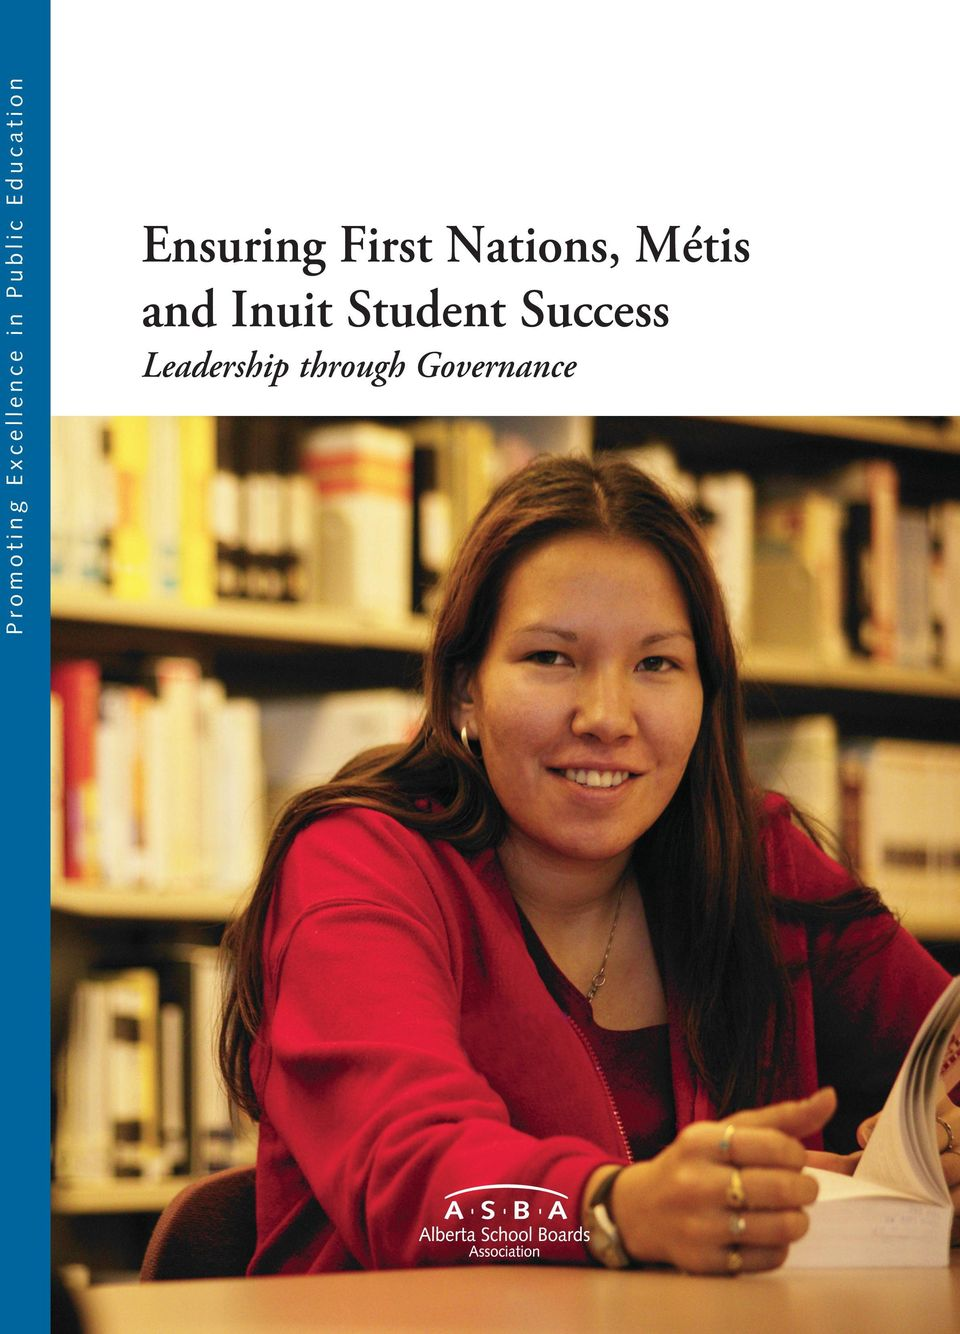 Ensuring First Nations, Métis and Inuit